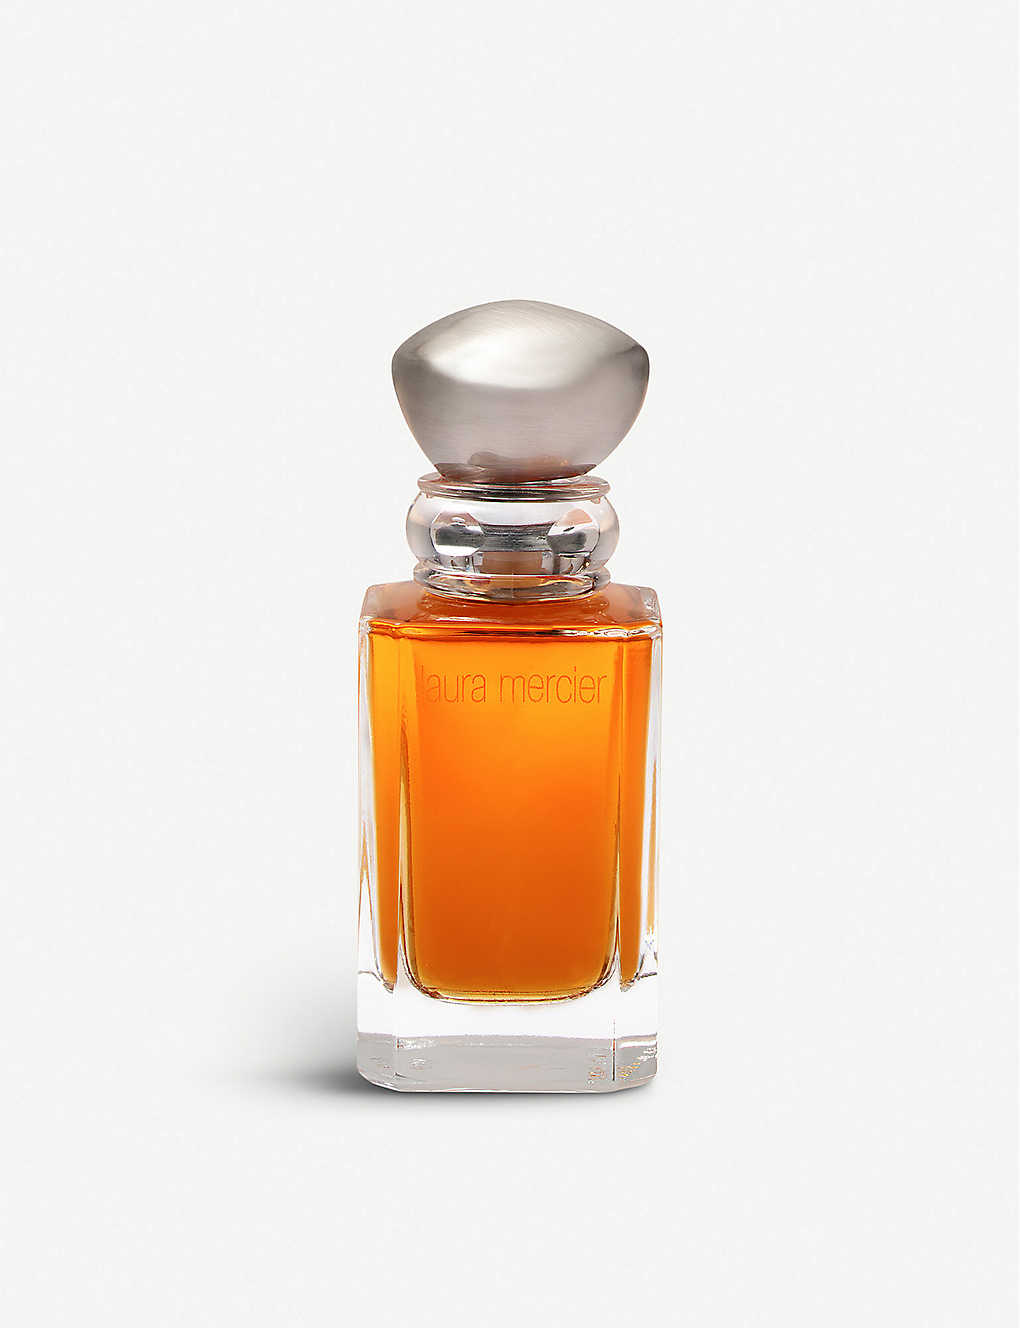 LAURA MERCIER: Ambre passion